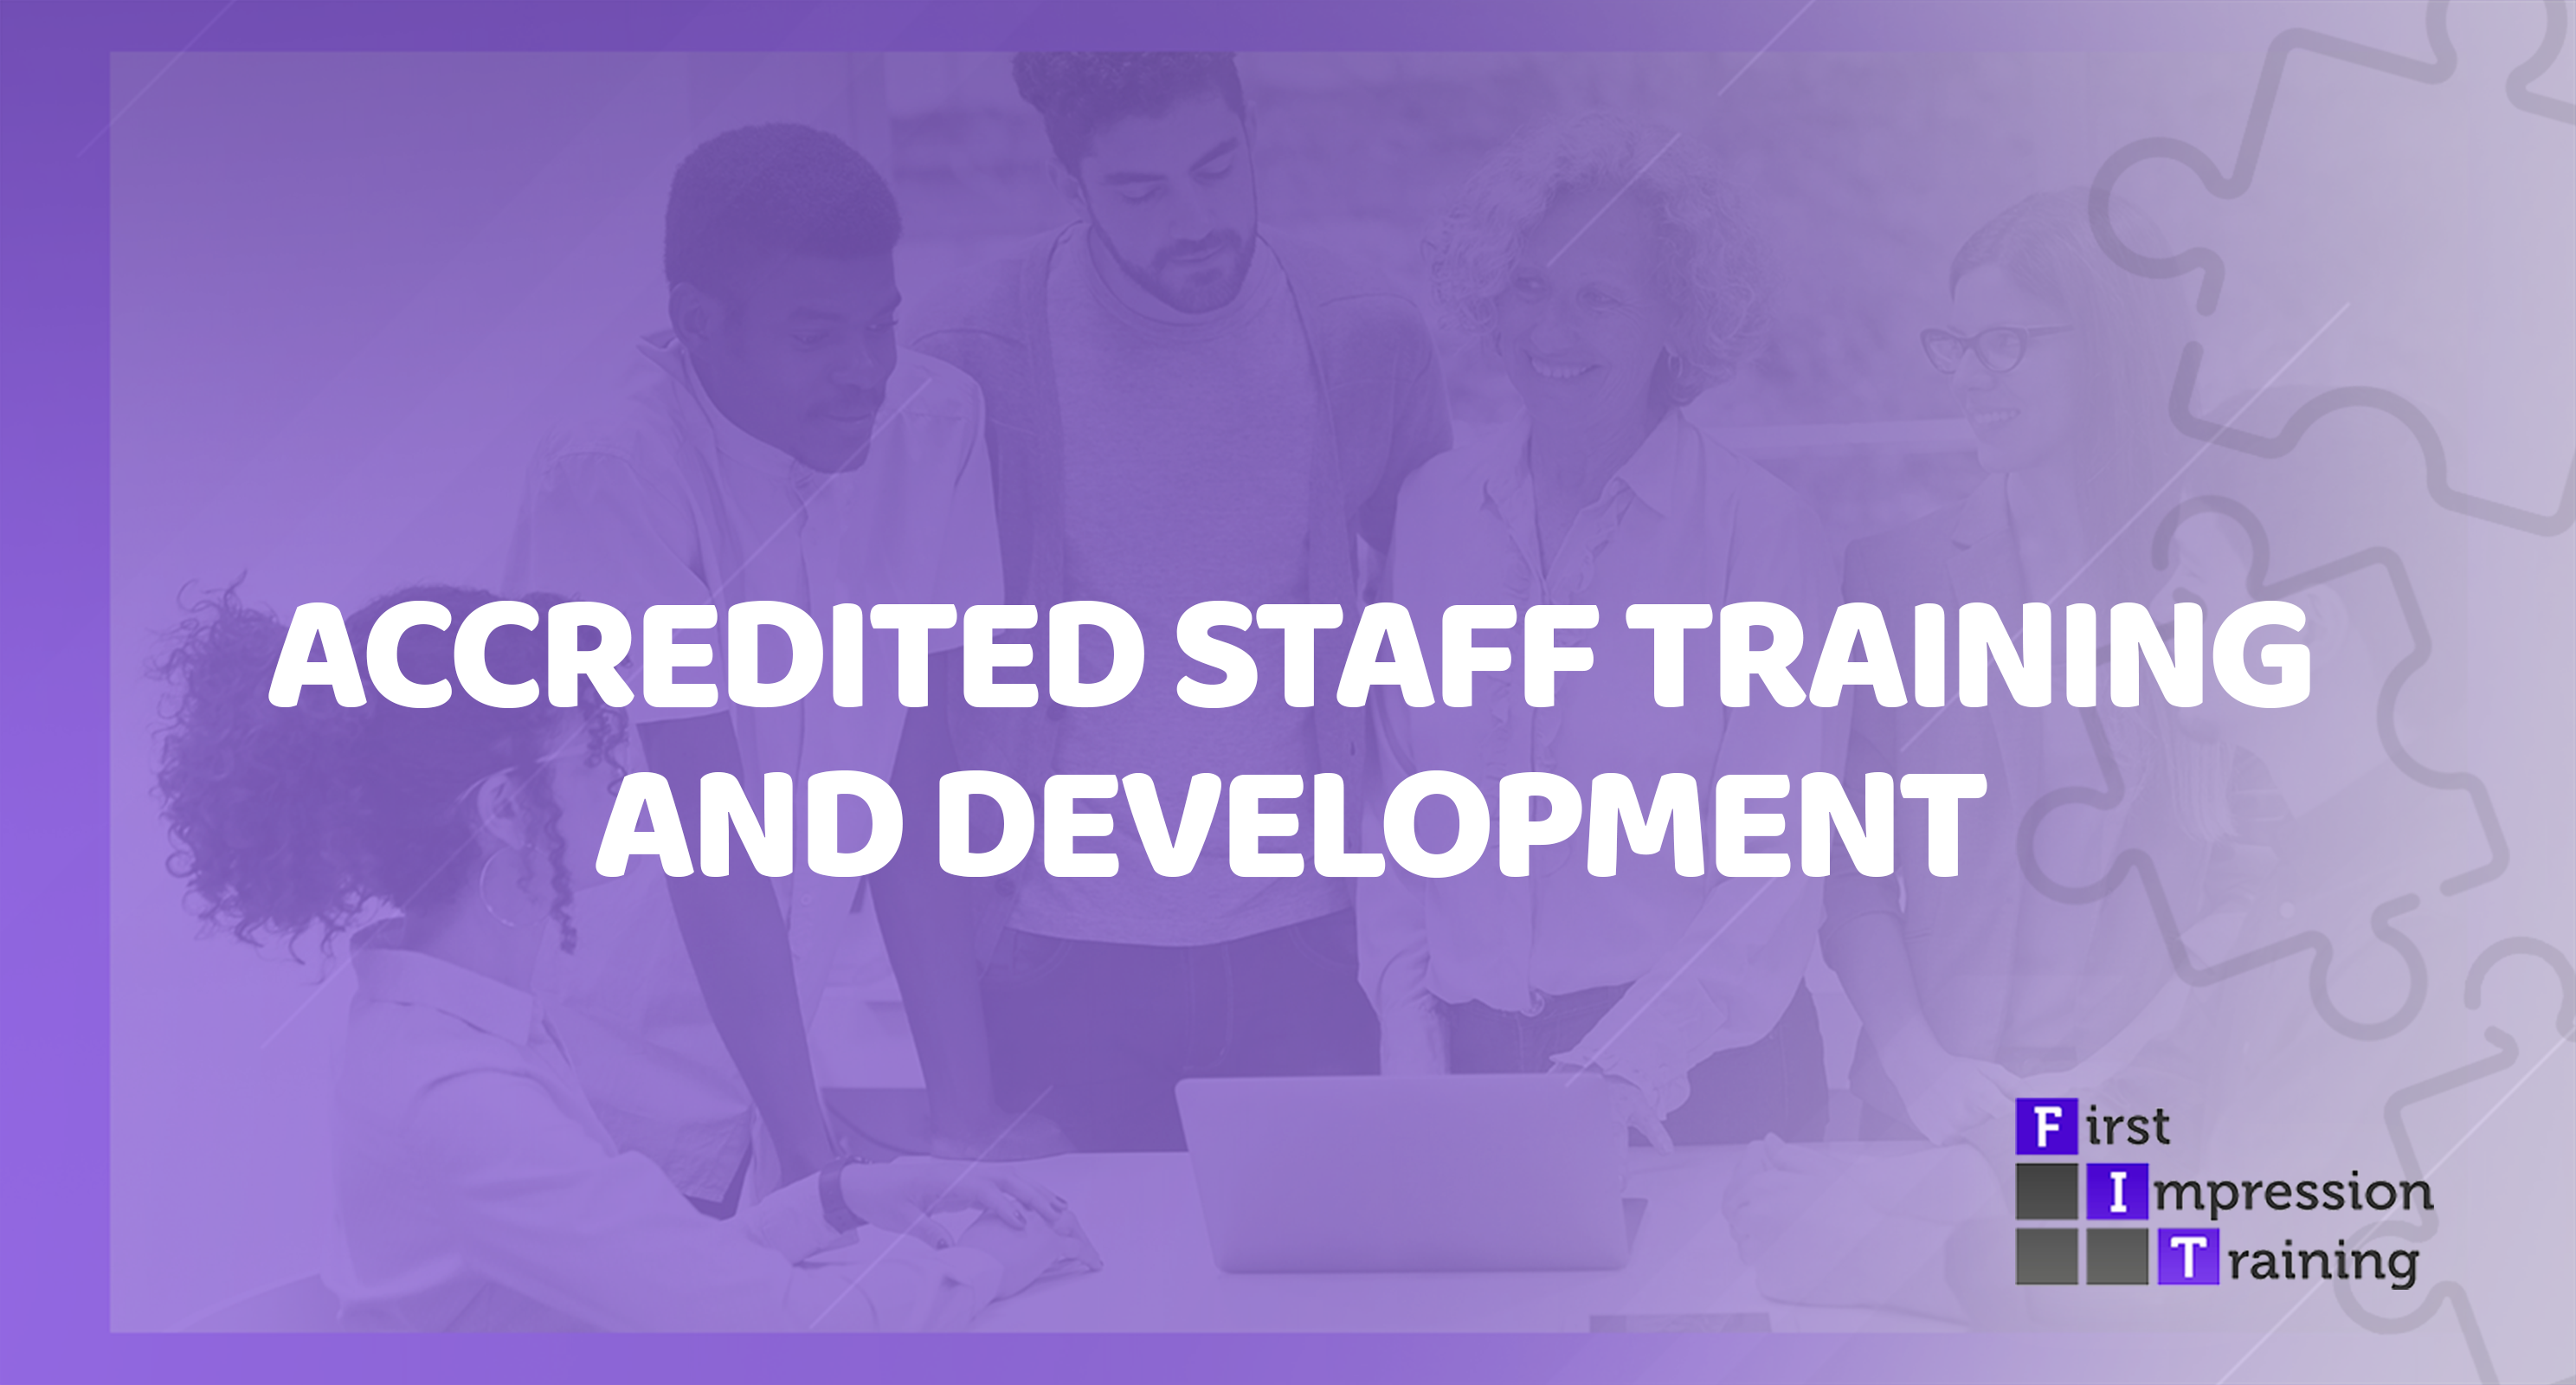 How can I get internal staff training officially accredited?